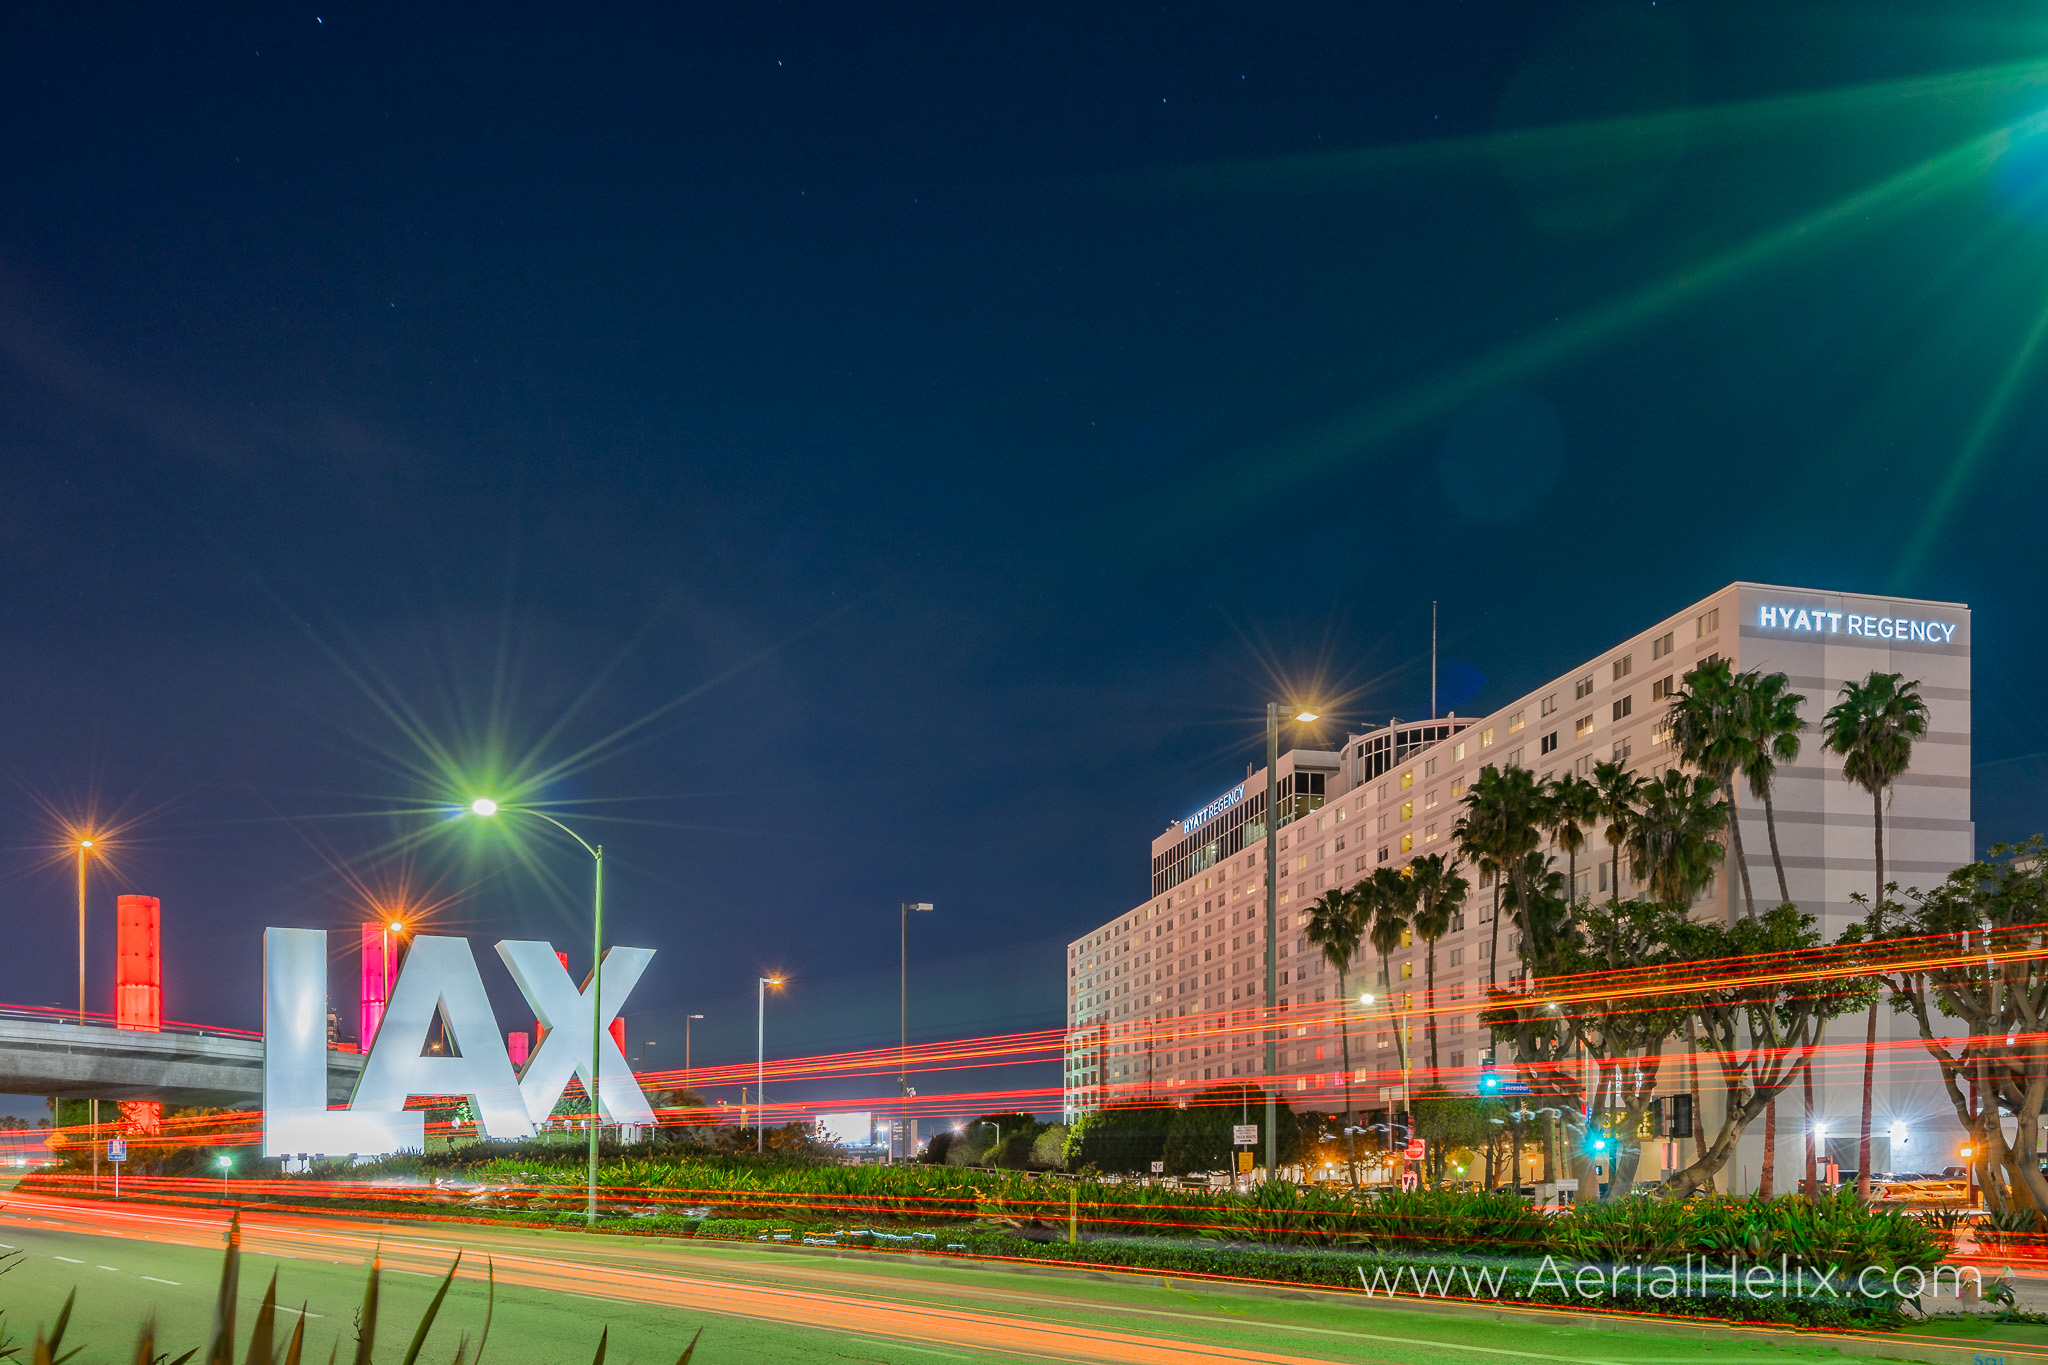 Hyatt Regency LAX small-217.jpg